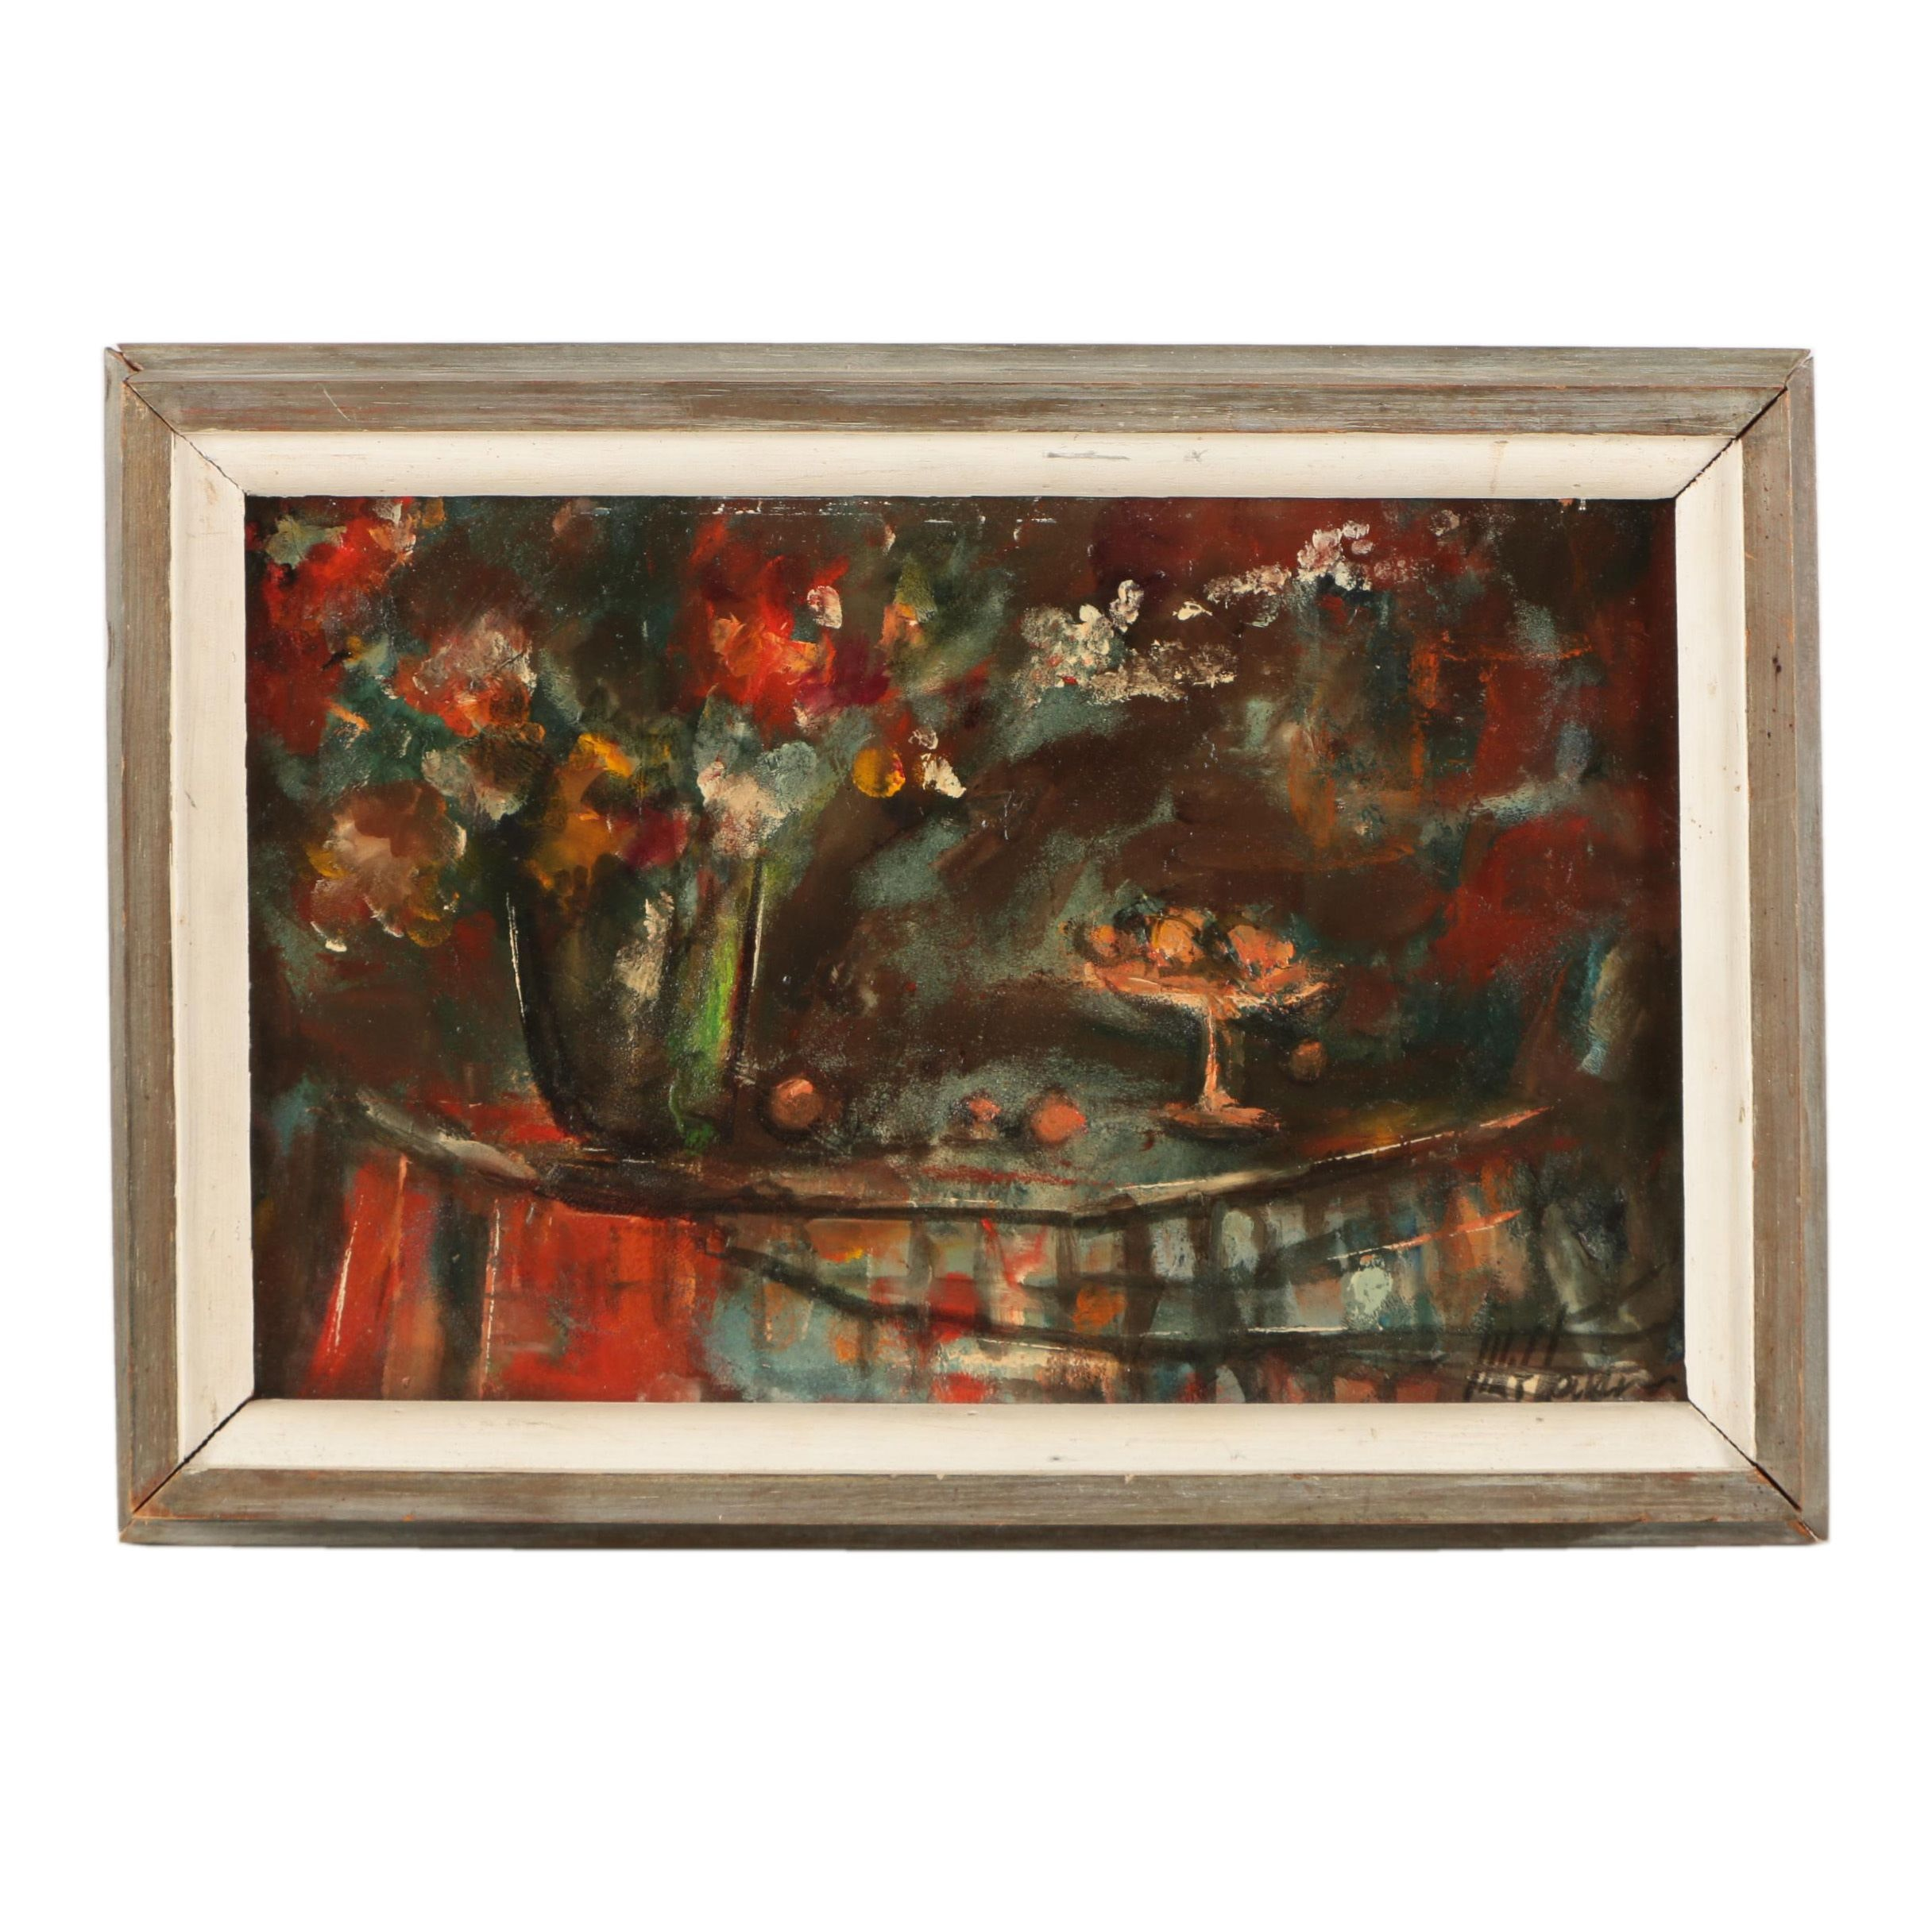 Oil Painting on Panel of a Still Life